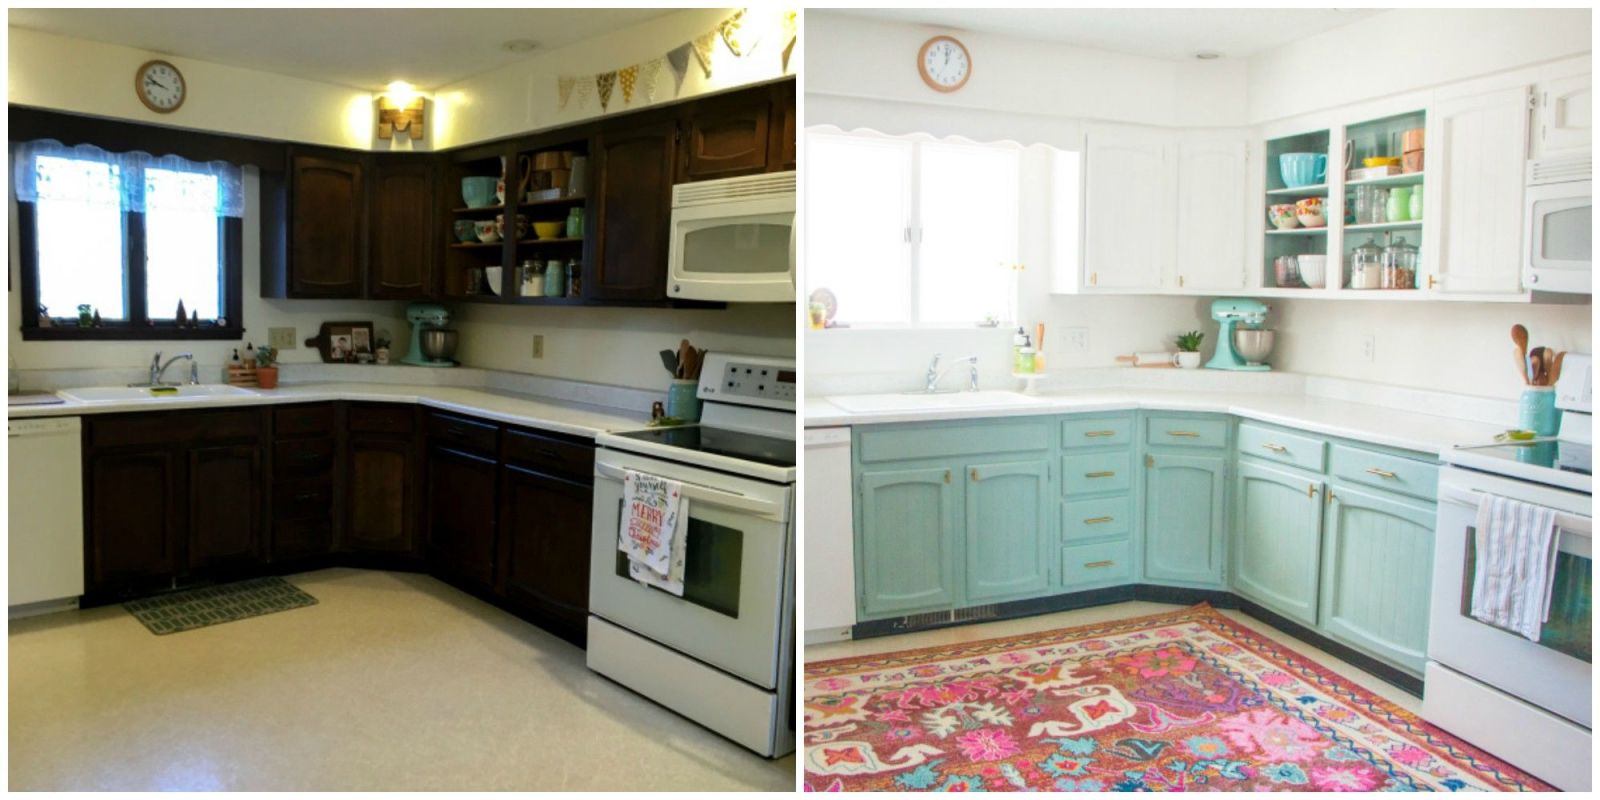 Kitchen Makeover Ideas This Bright And Cheery Kitchen Renovation Cost Just $250  Cheap .